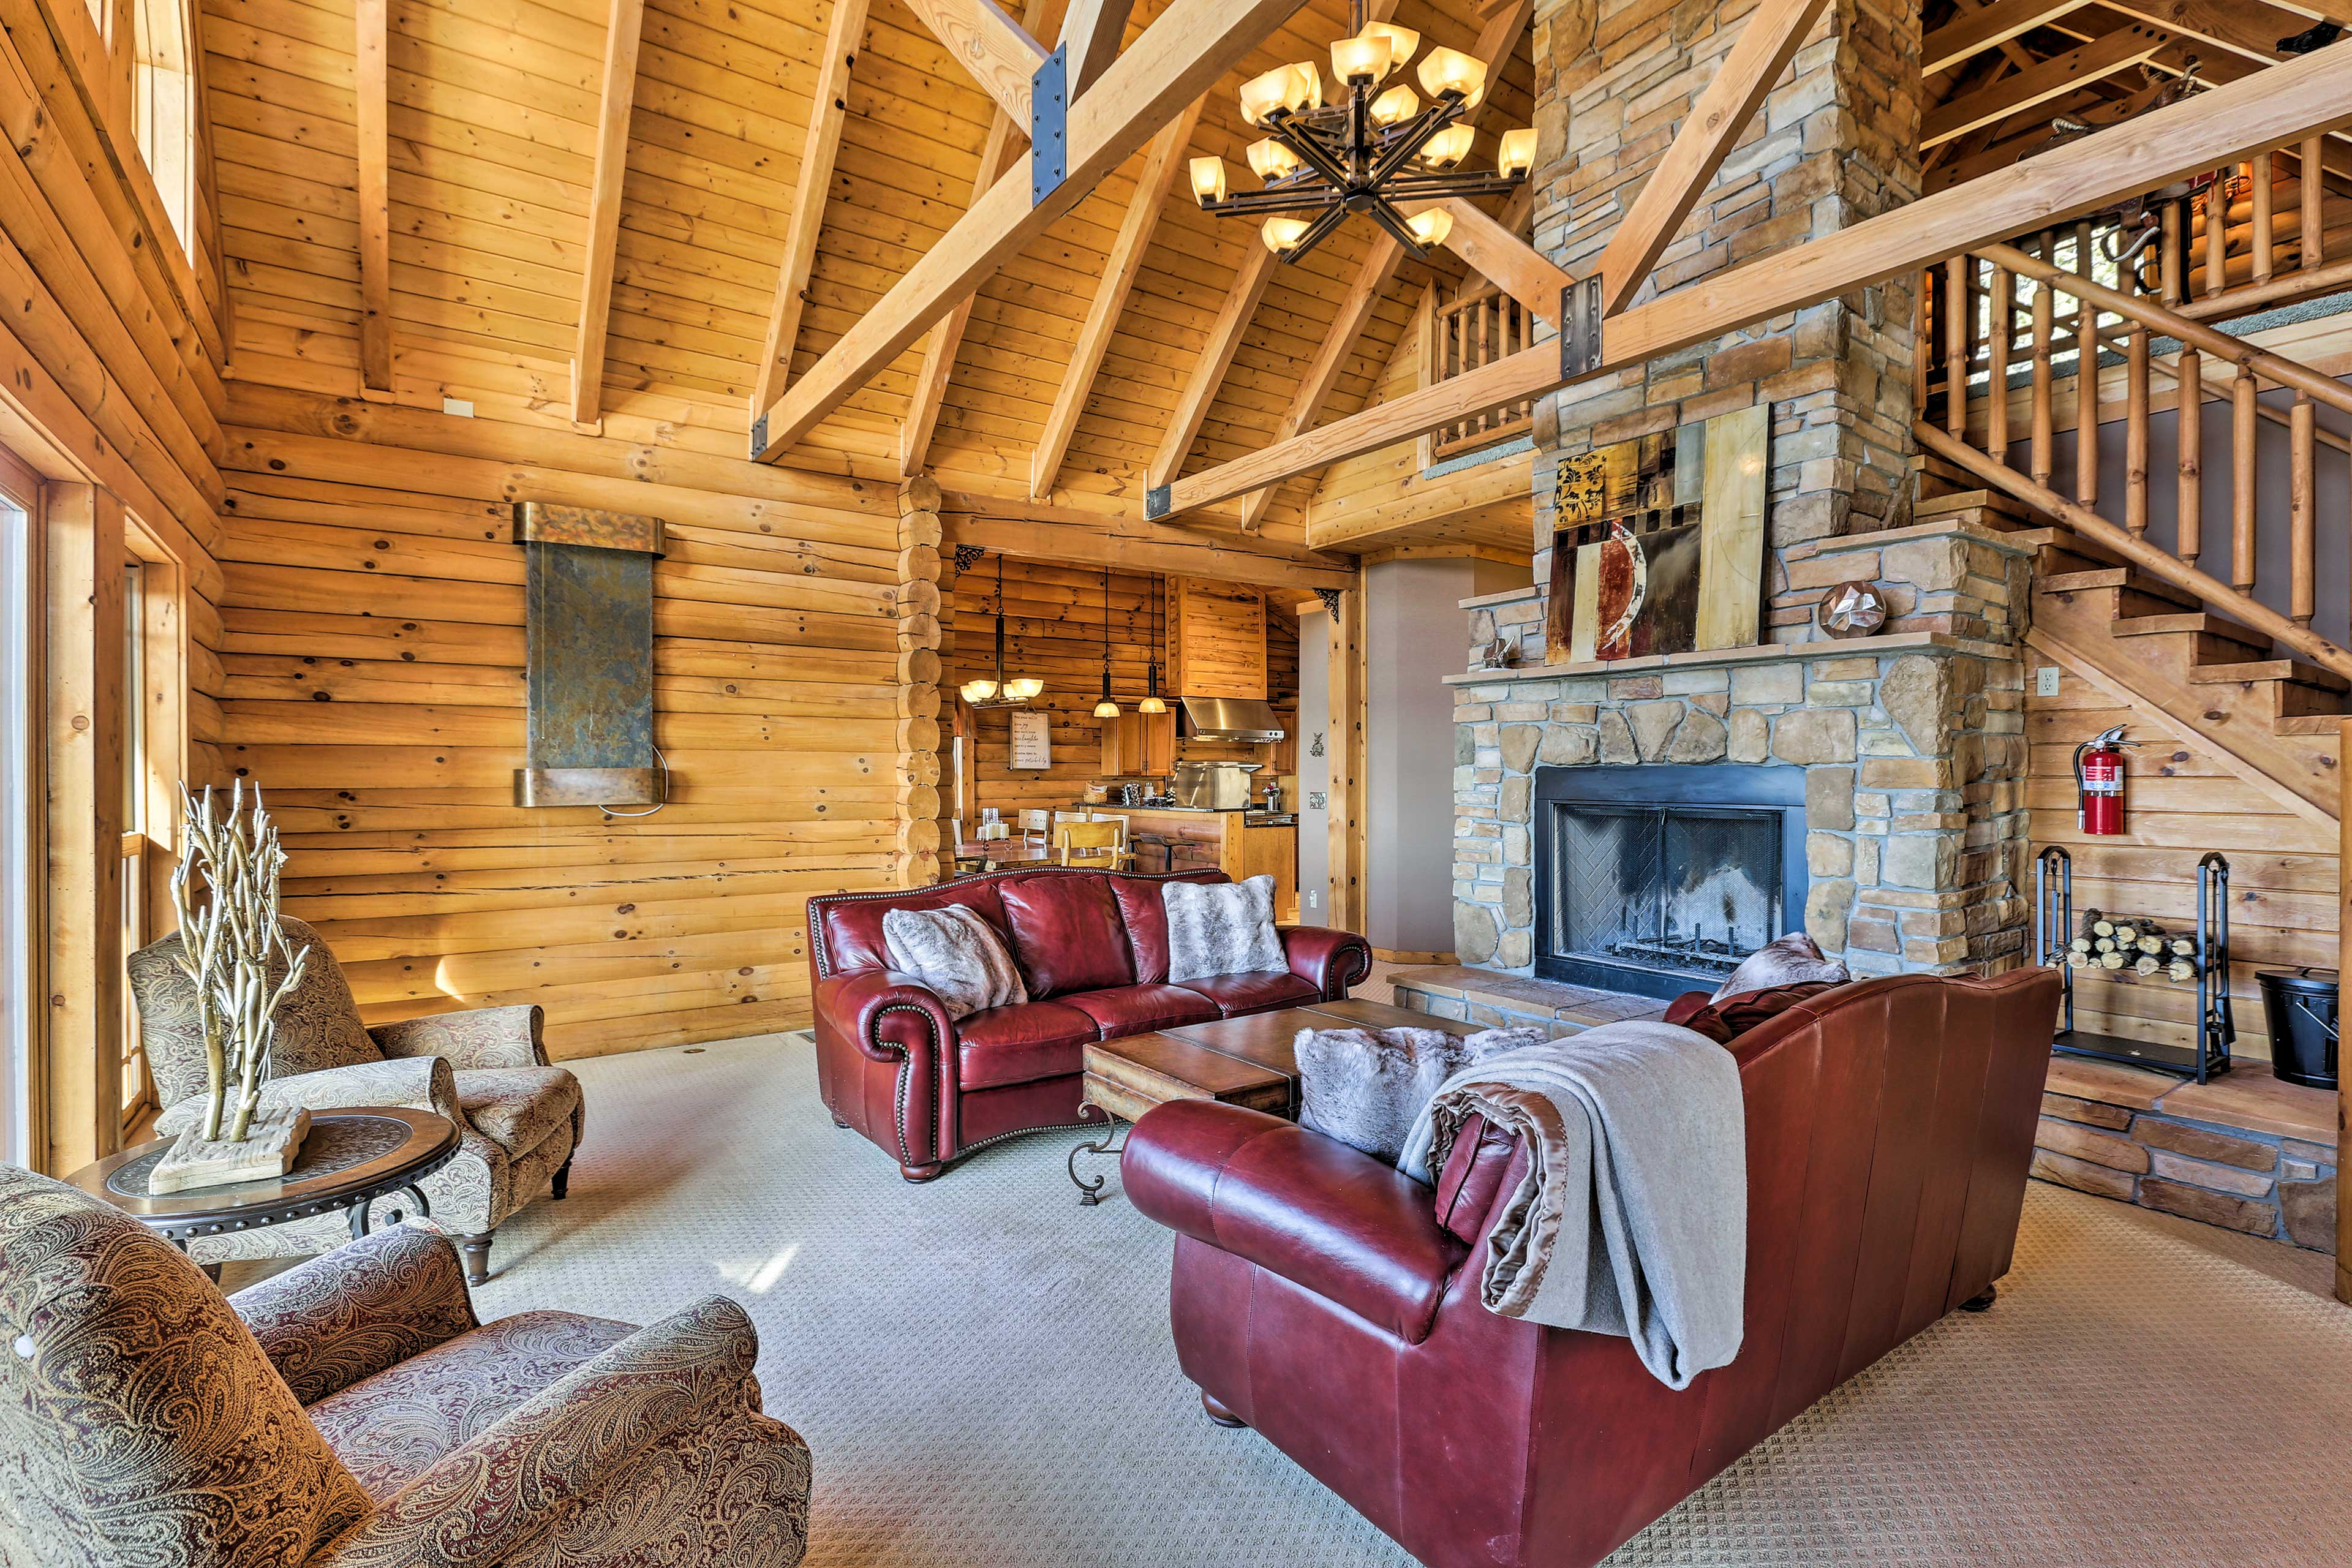 There are 3 bedrooms, 3.5 bathrooms, and accommodations for 8 guests.